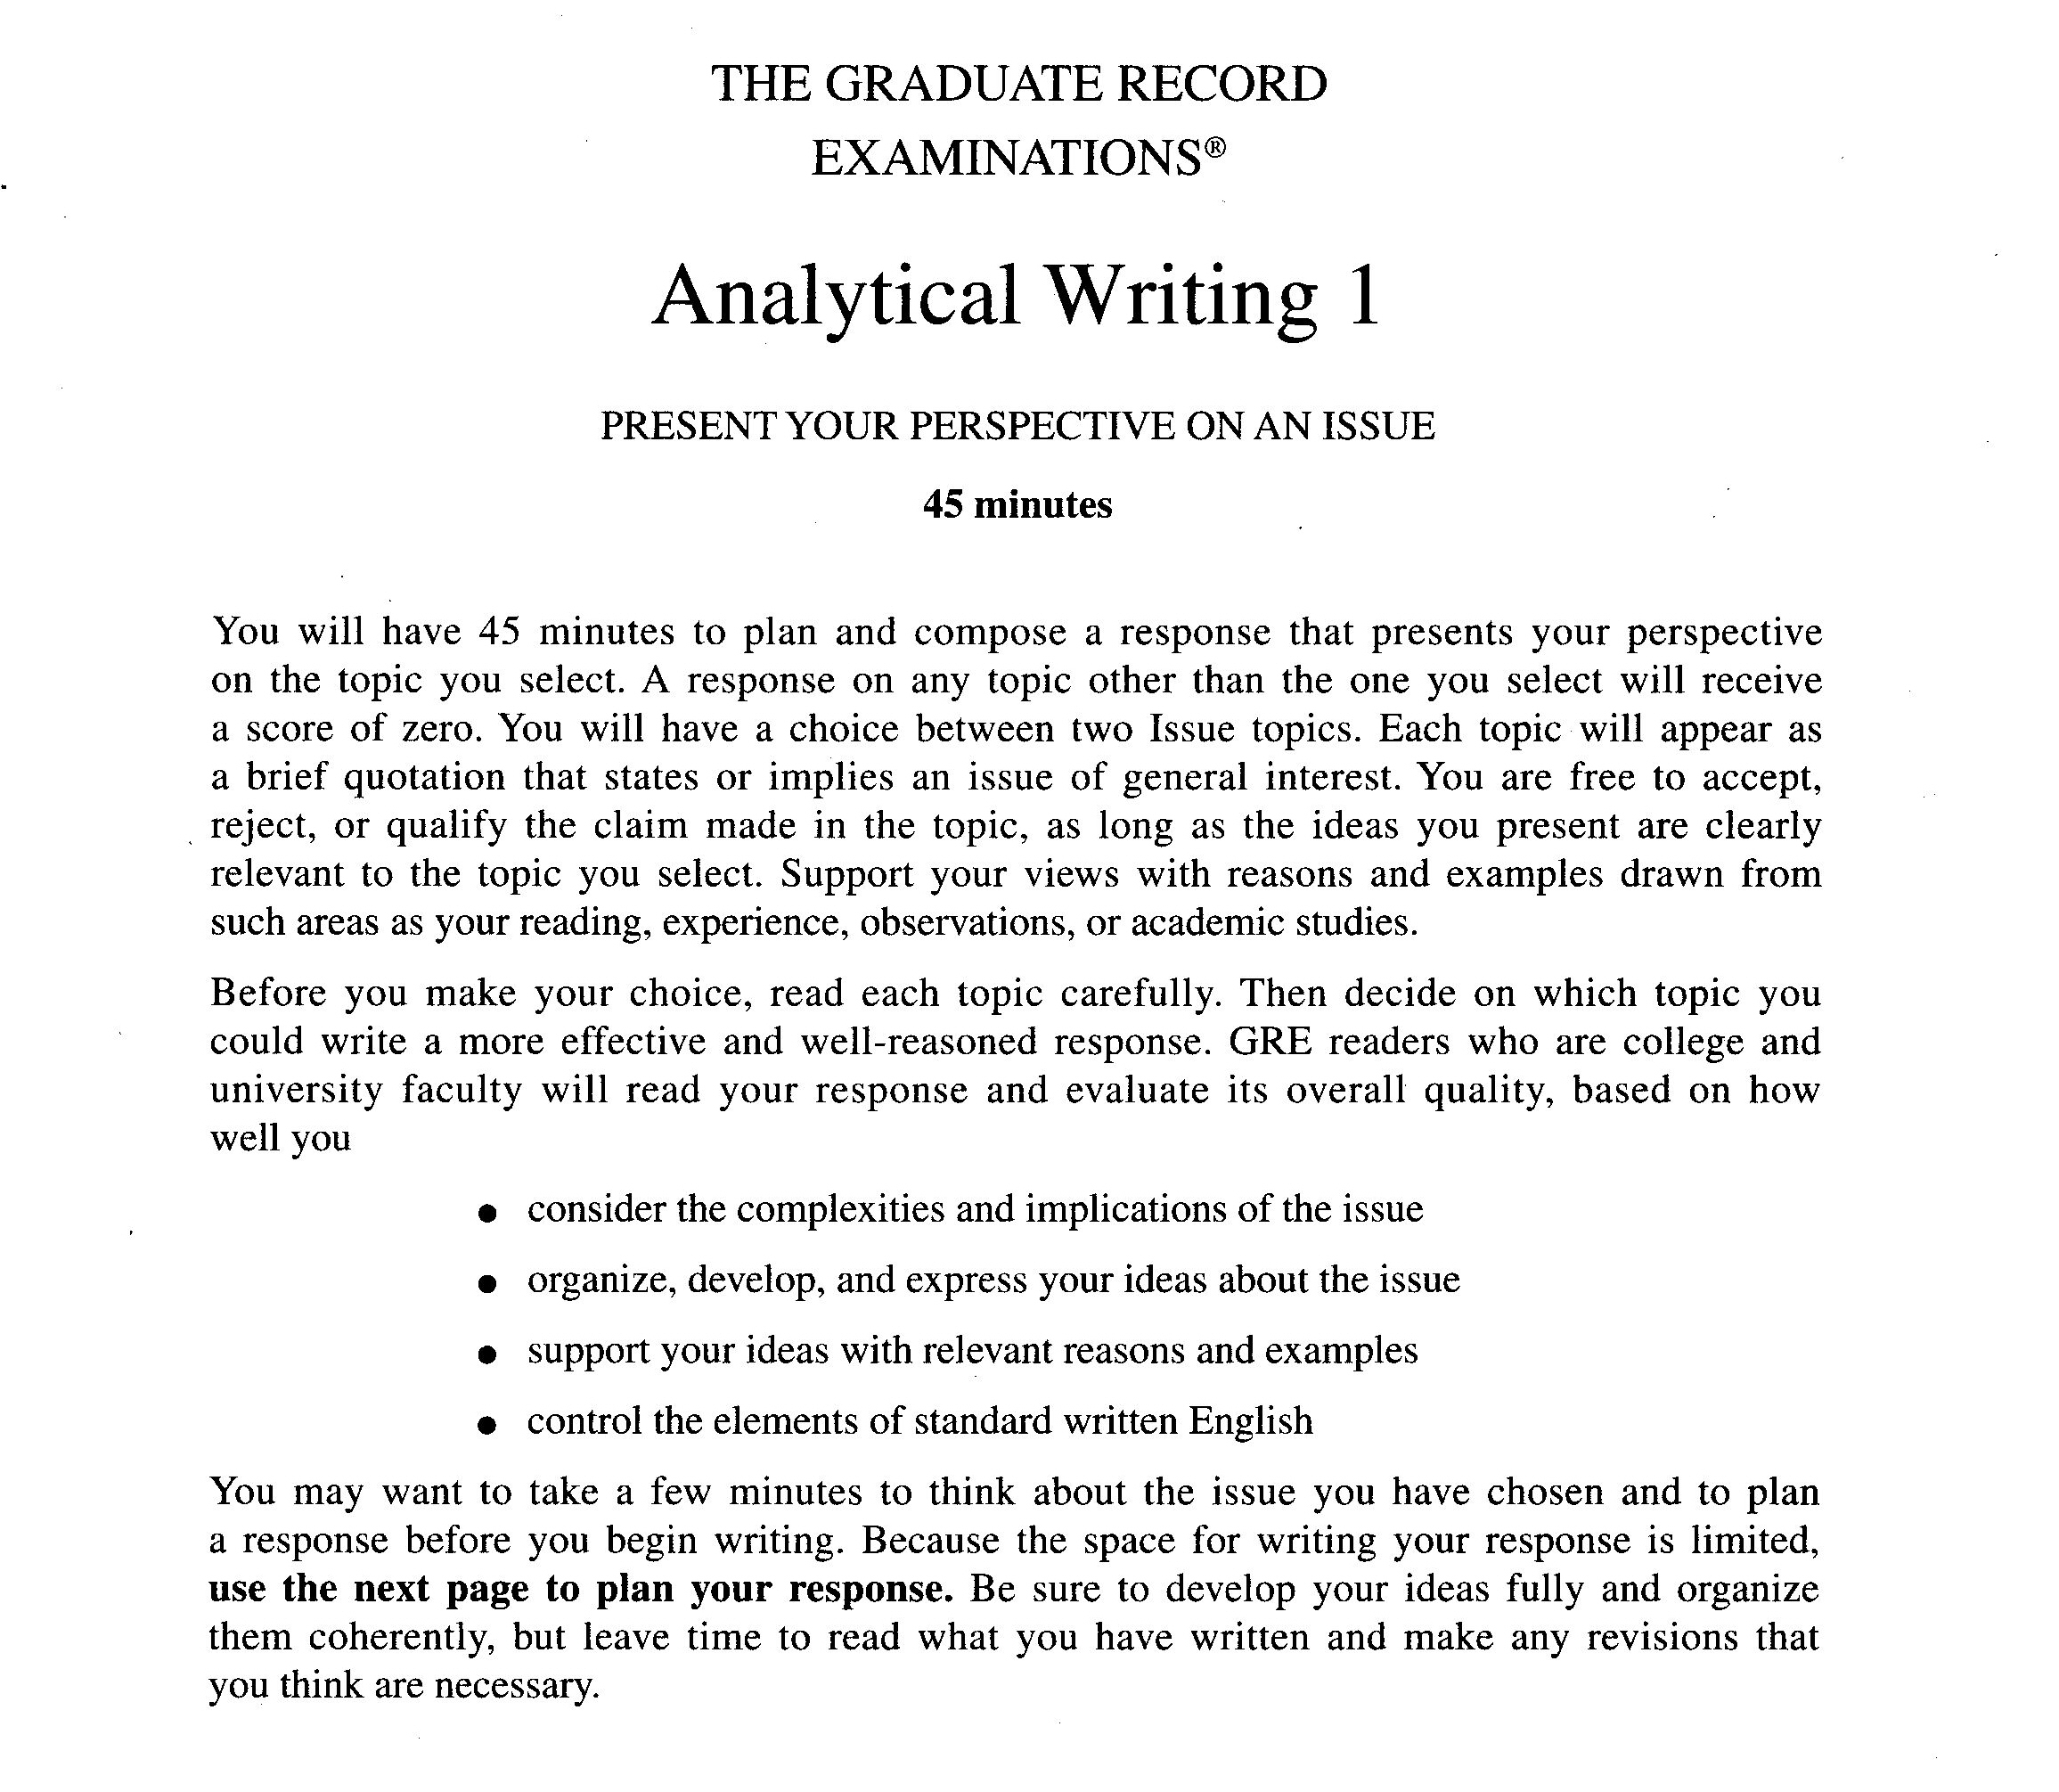 analytic essays analysis essay sample academic essay write  analytical essays examples analytical essays examples gxart gre analytical writing sample essays media essay writing basic